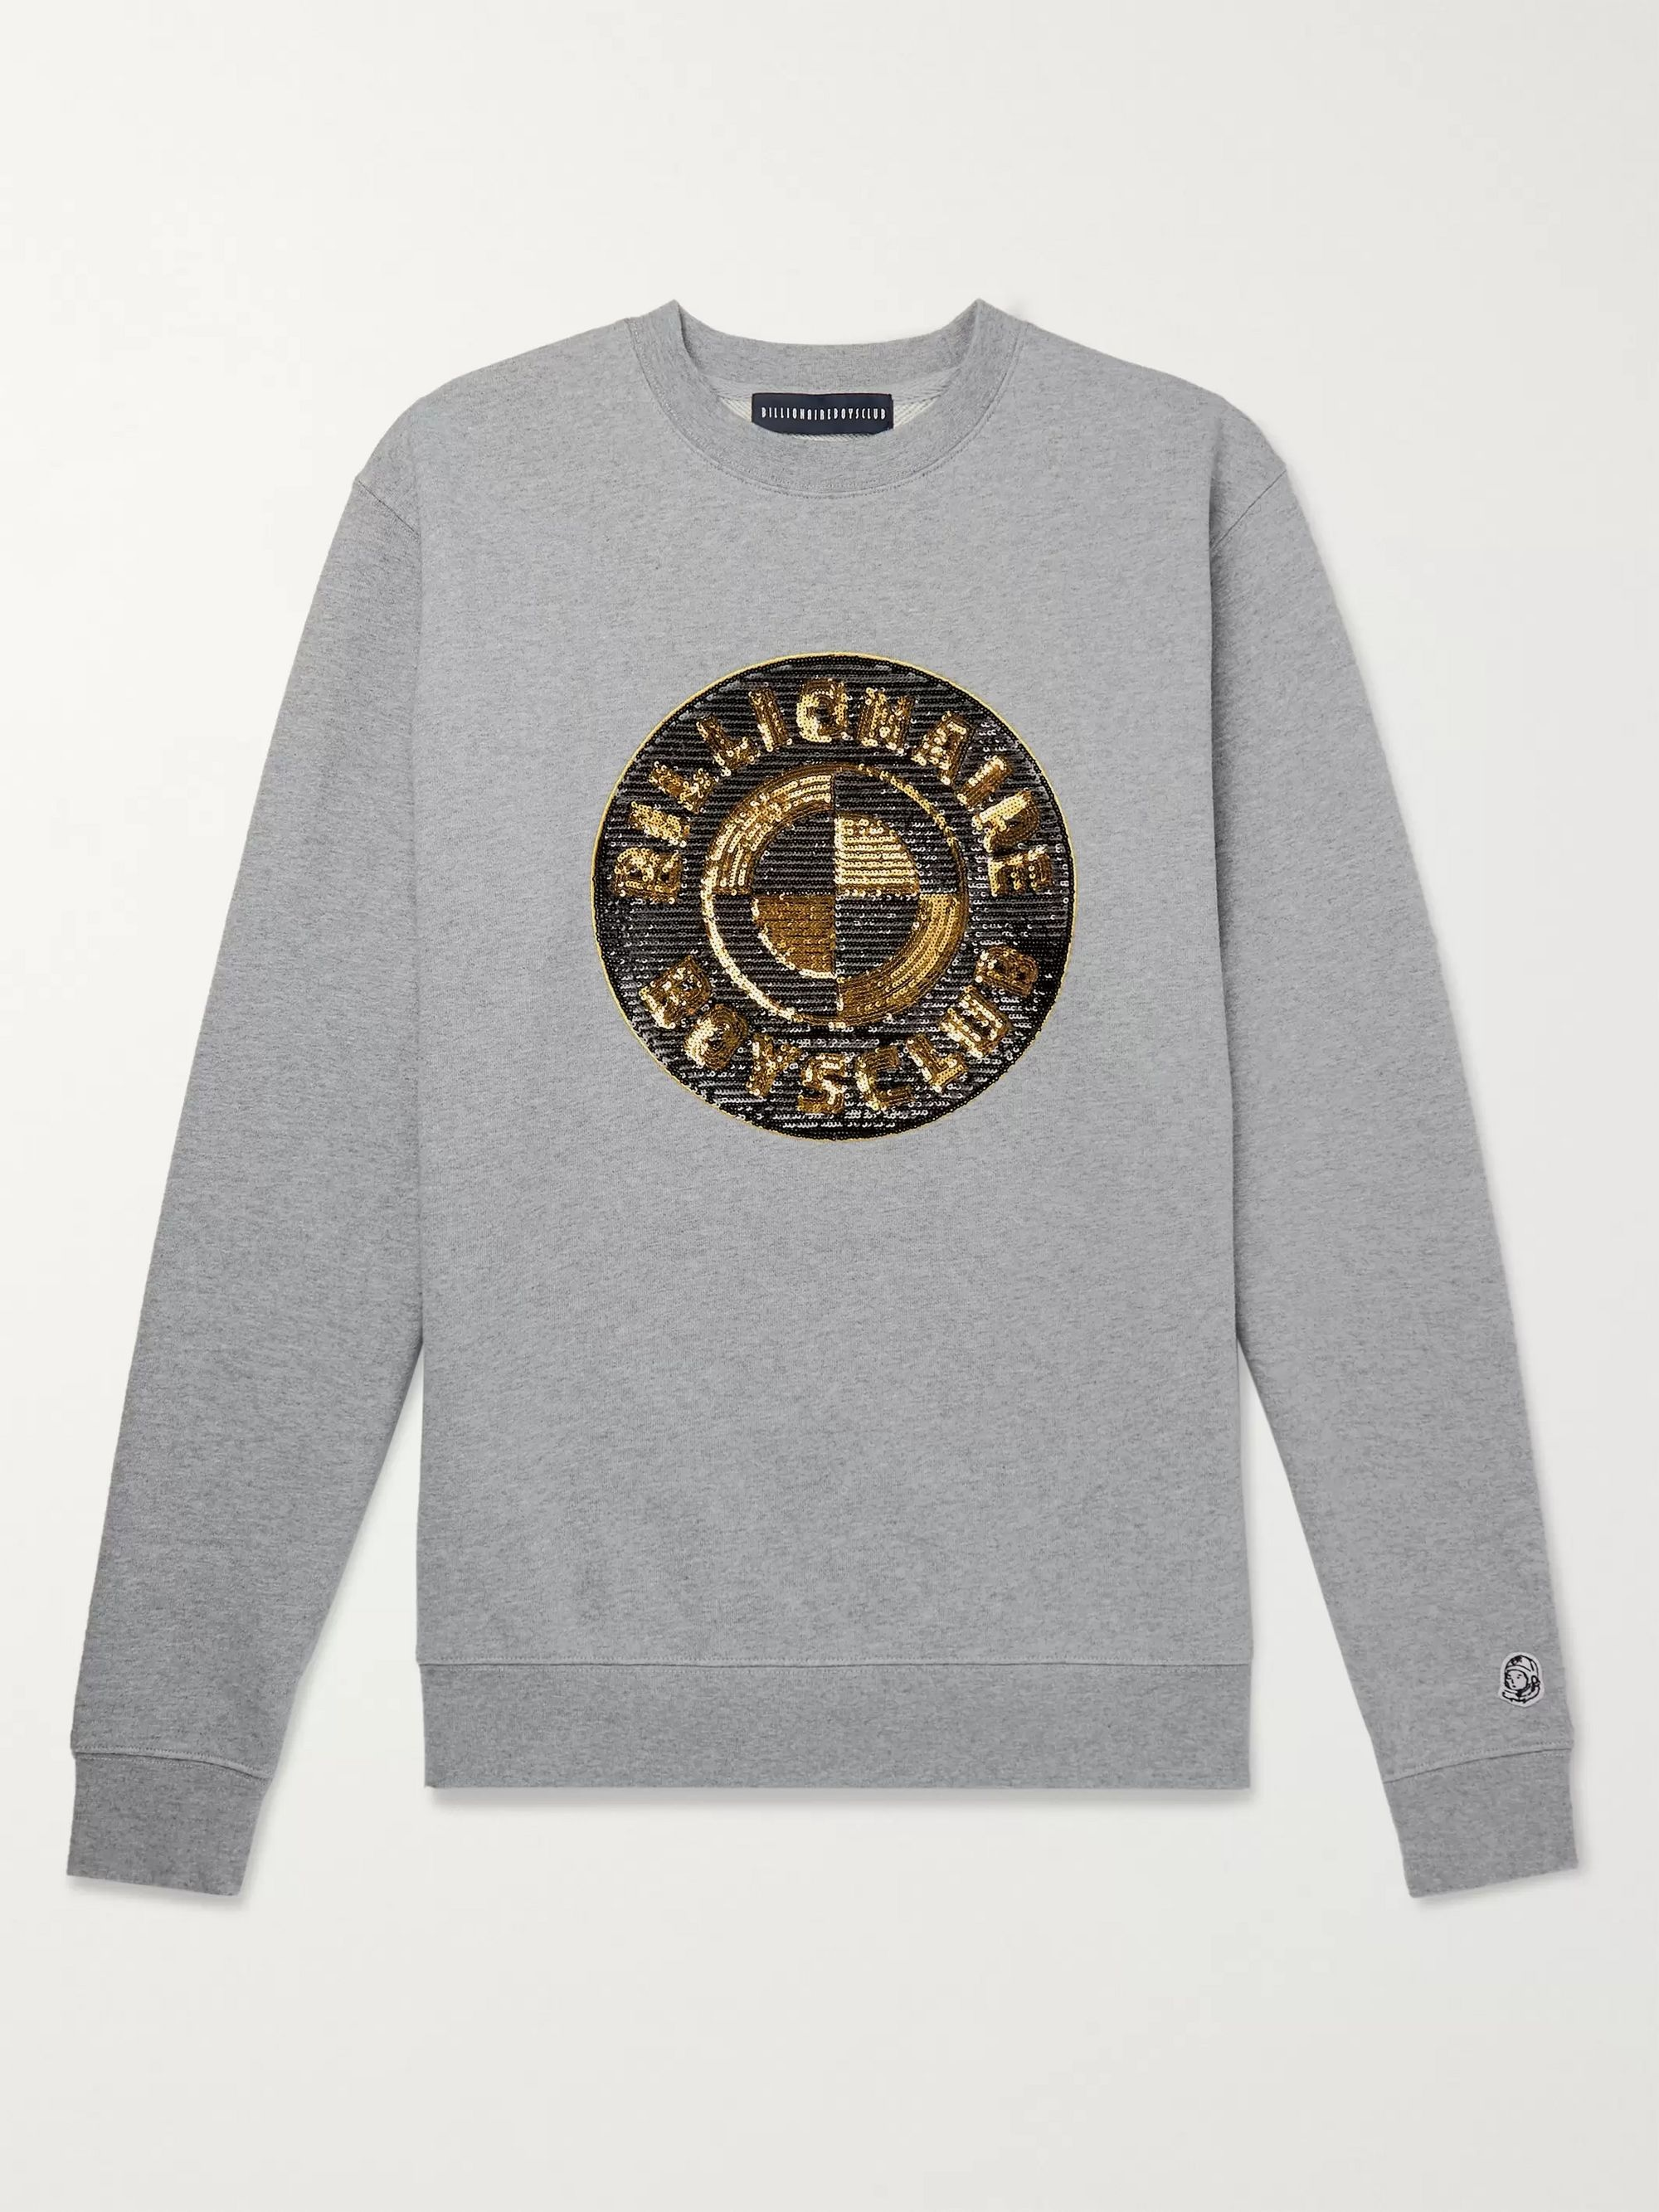 Sweatshirts – Billionaire Boys Club